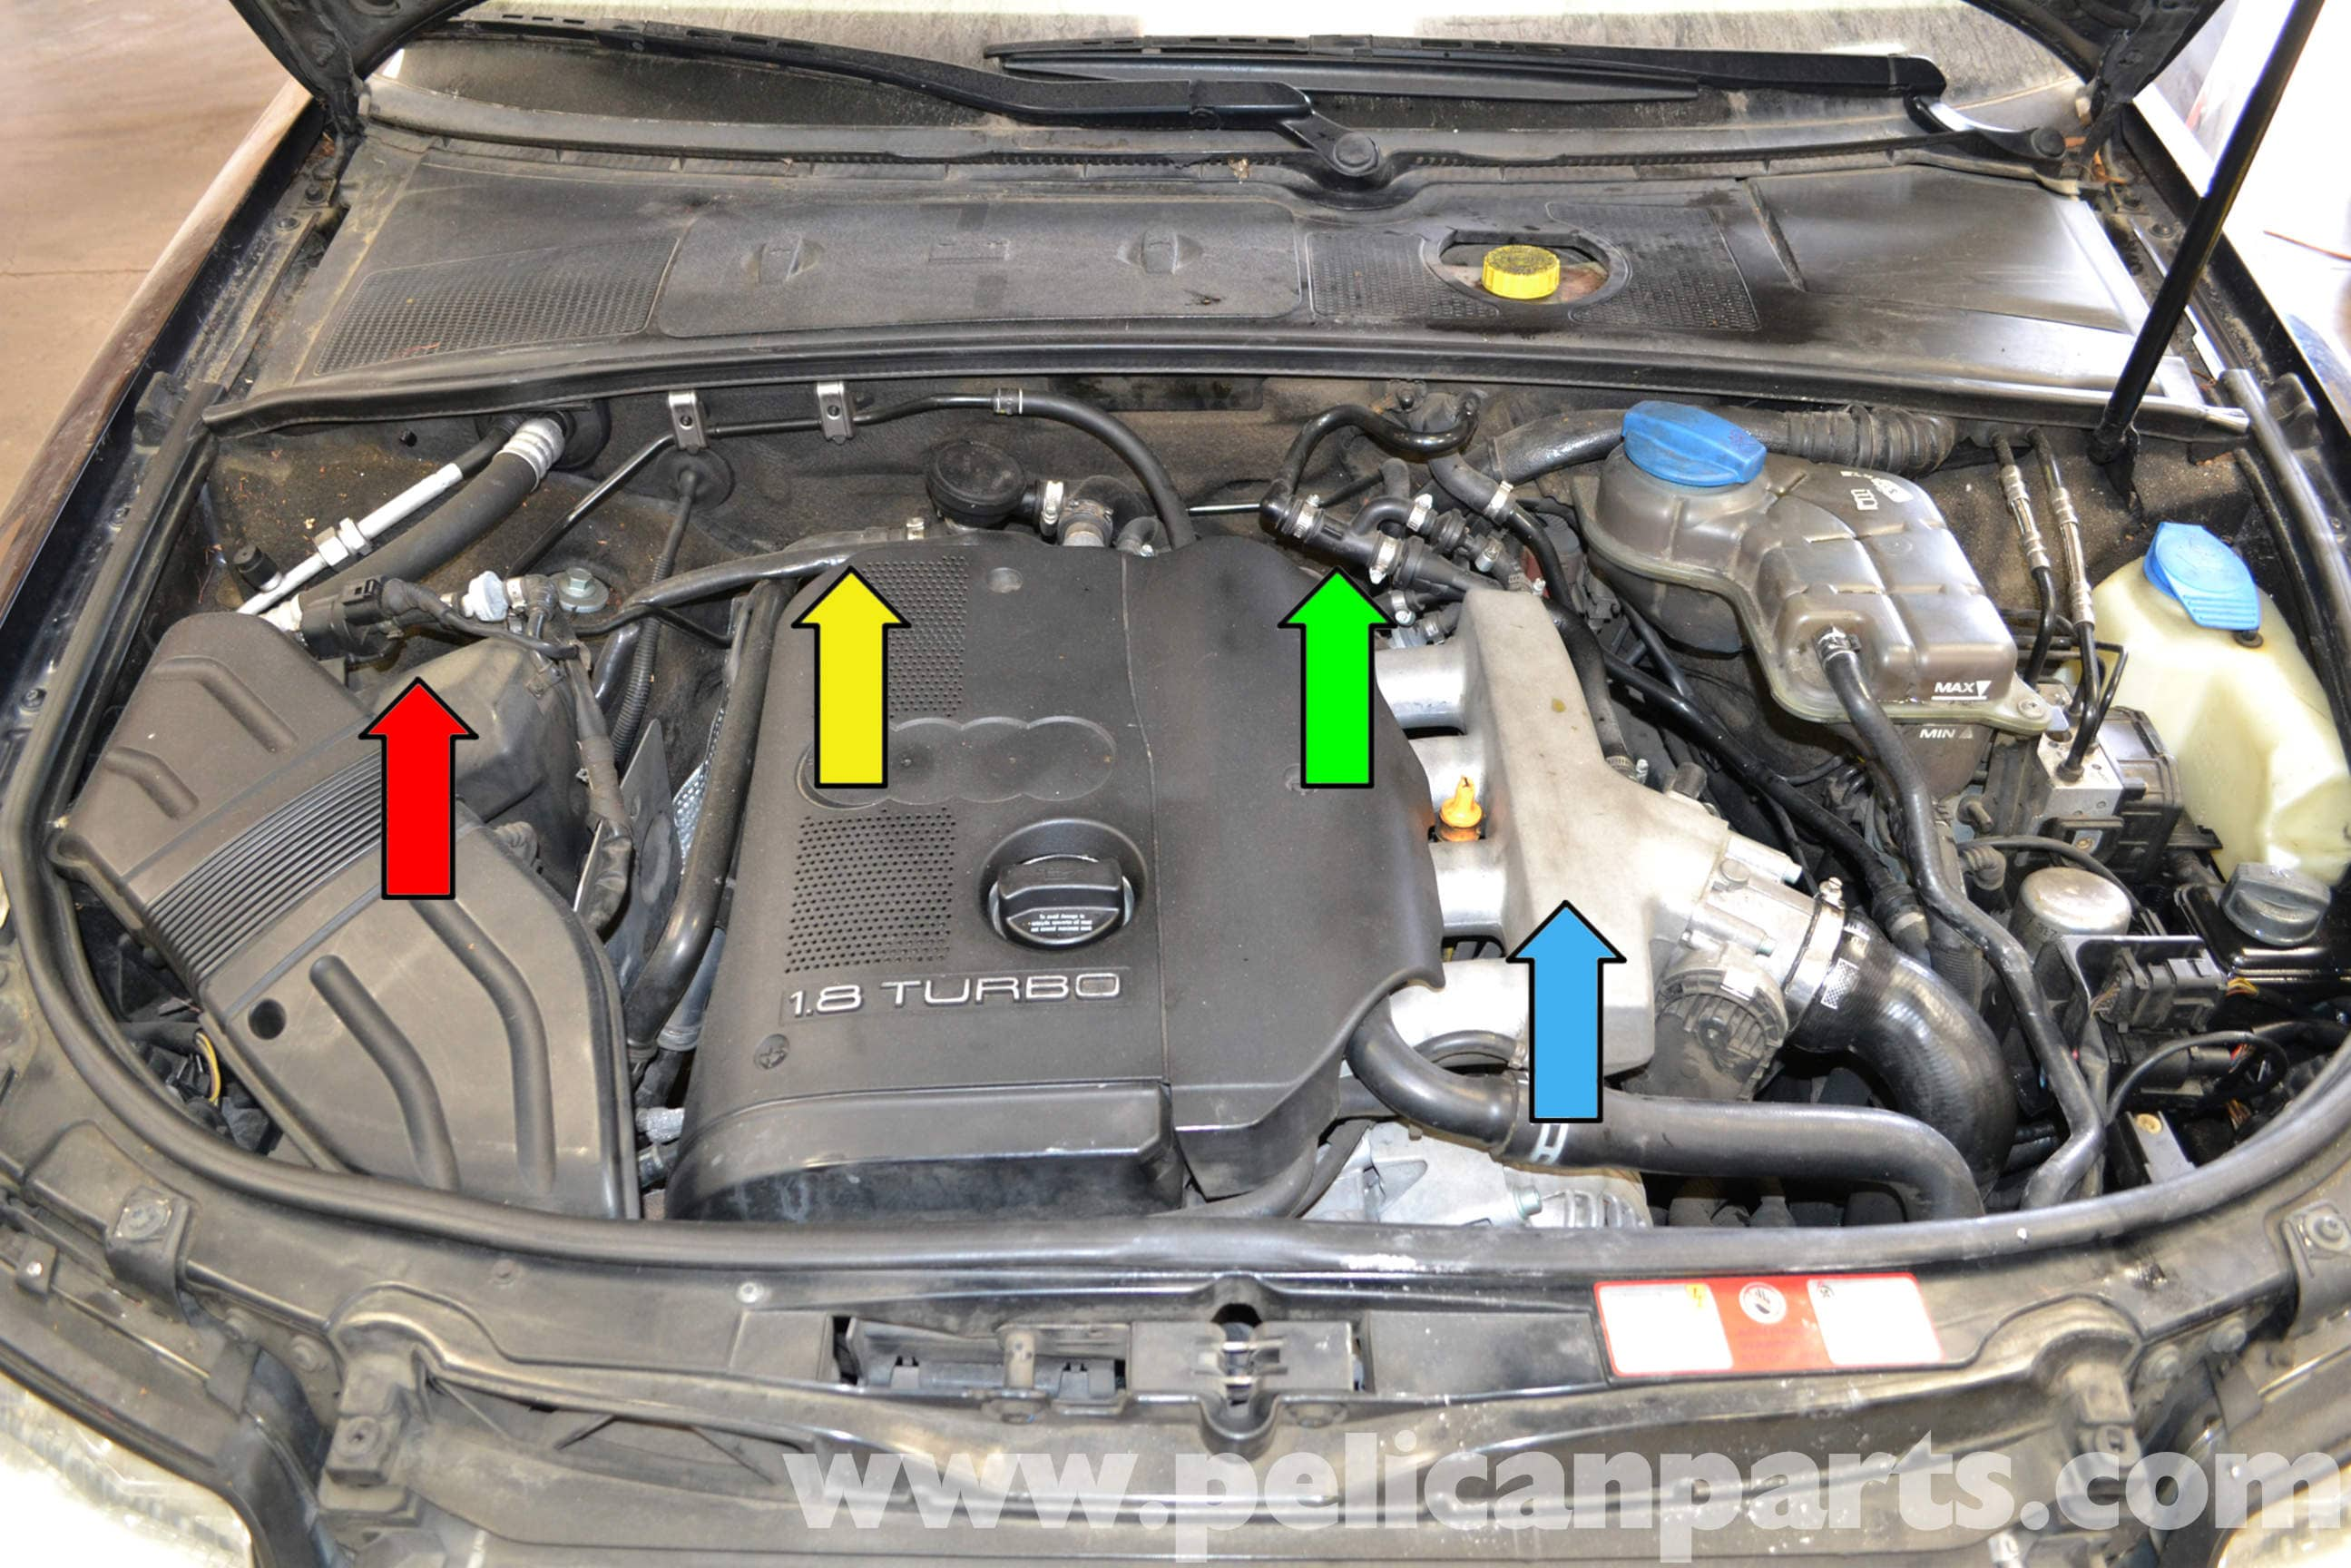 1999 Audi A4 Quattro Engine Diagram Free Wiring For You B7 Towbar Air Hose Simple Rh 23 Terranut Store 2013